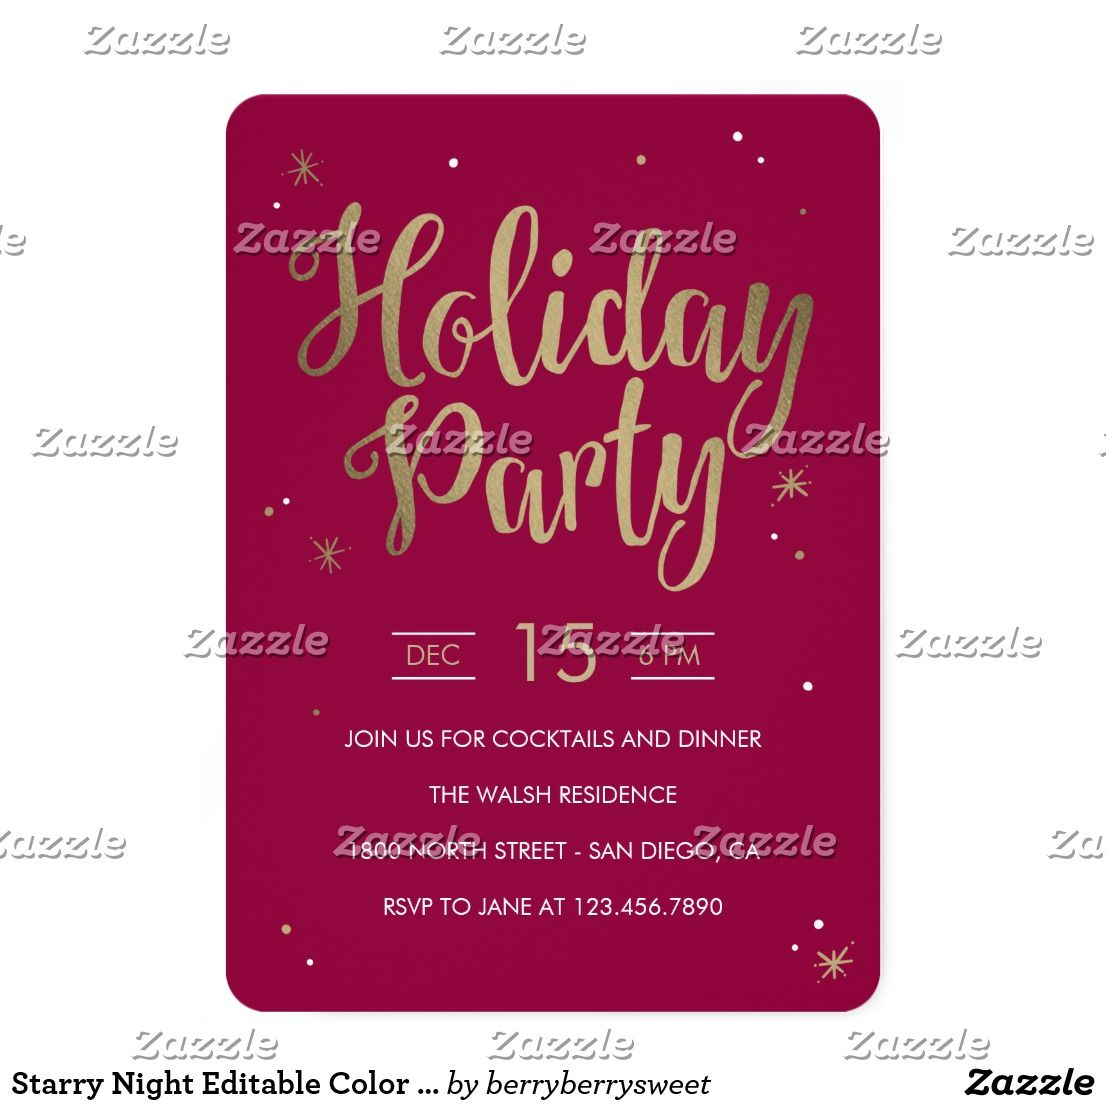 Starry Night Editable Color Holiday Party Invite   Holiday party ...